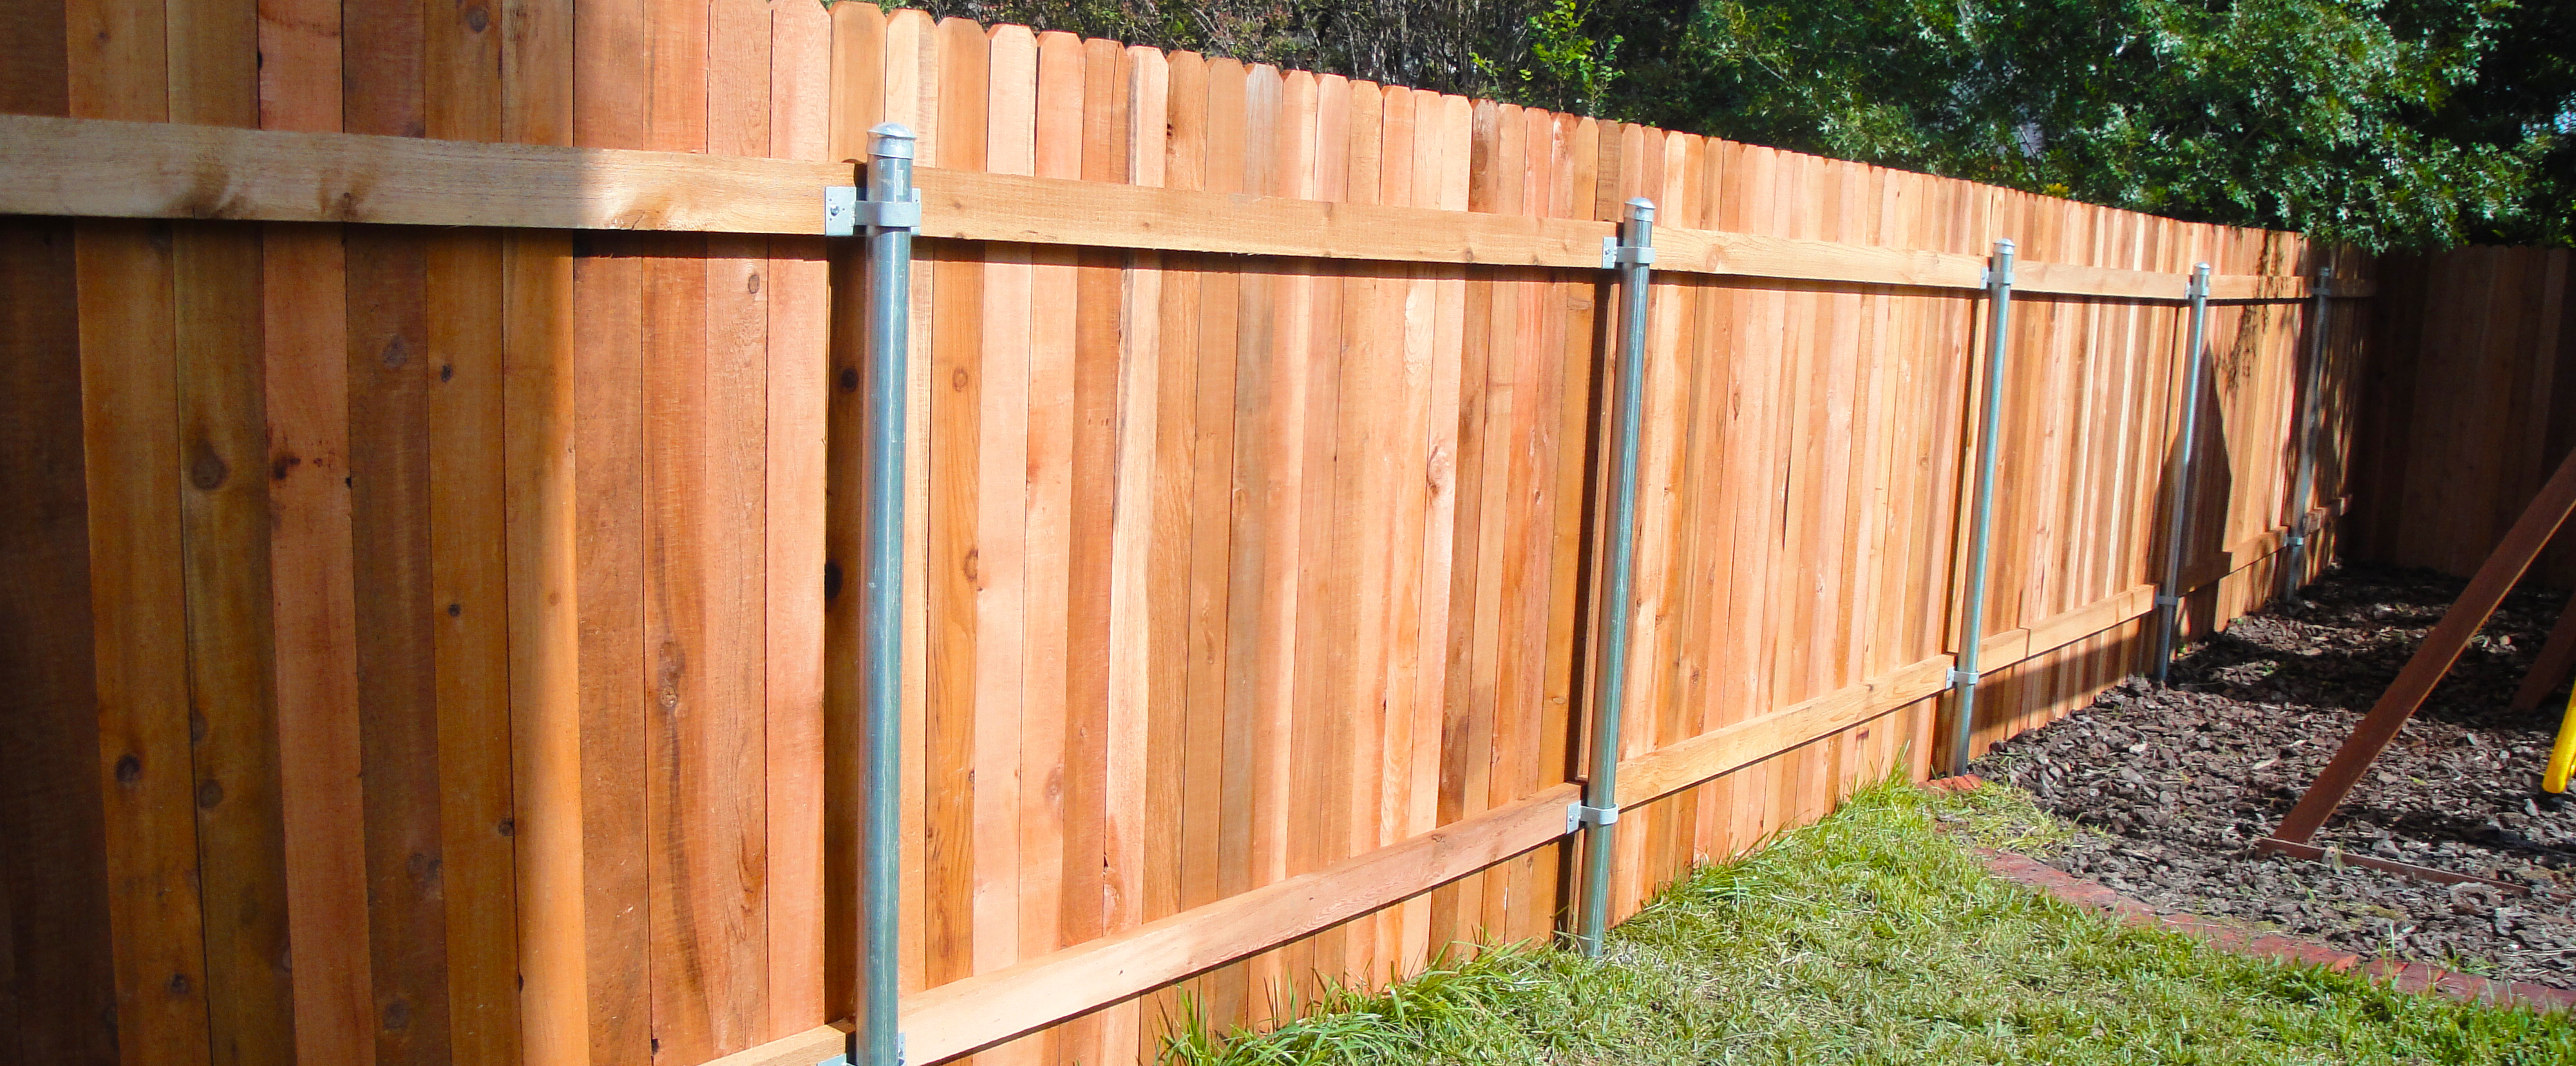 Wood Privacy Fences Austin Tx Ranchers Fencing Landscaping